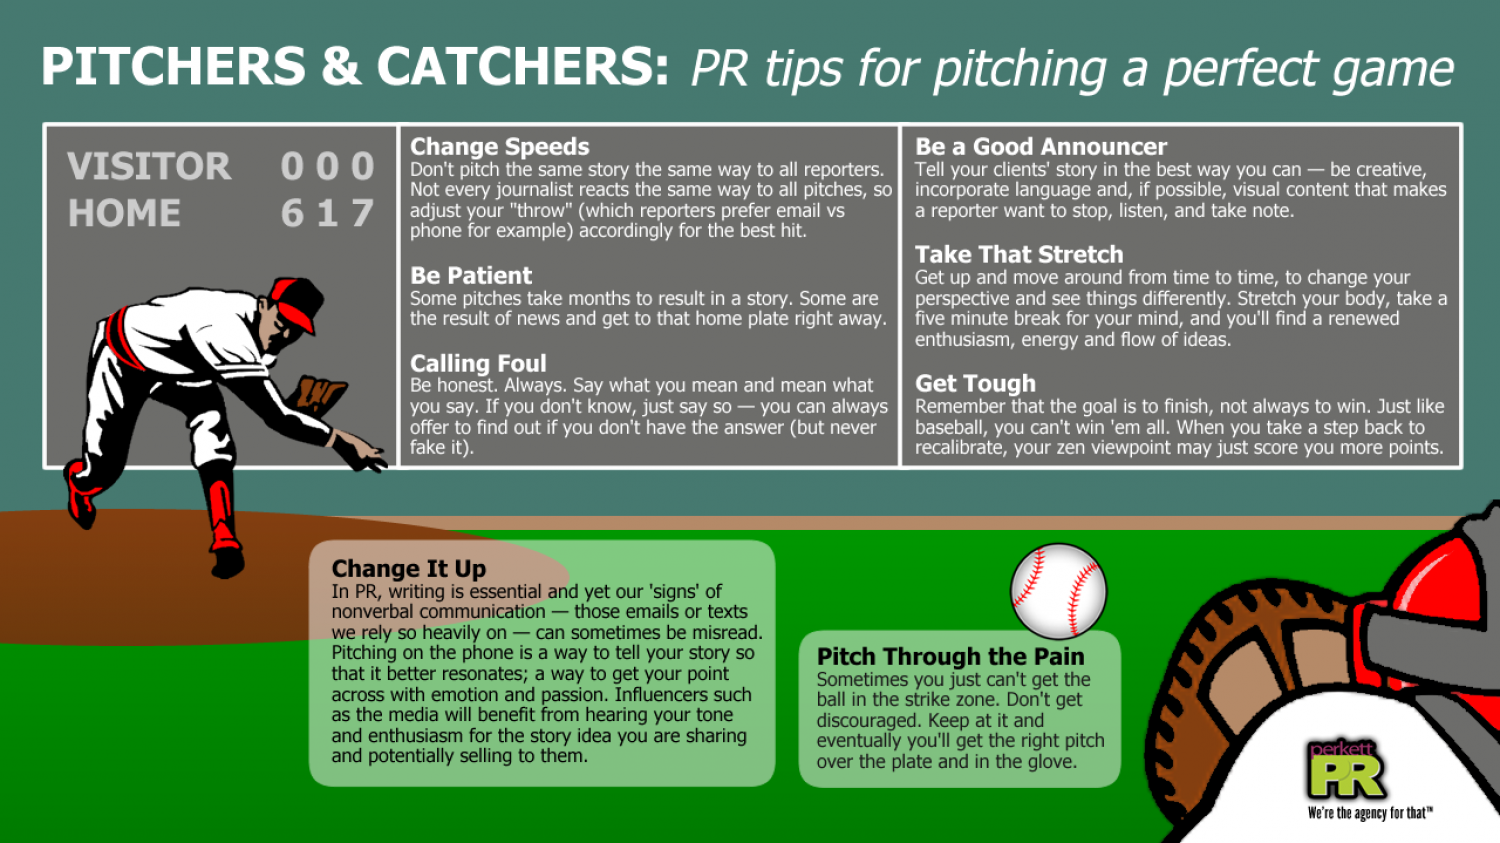 Pitchers & Catchers: PR tips for pitching a perfect game Infographic